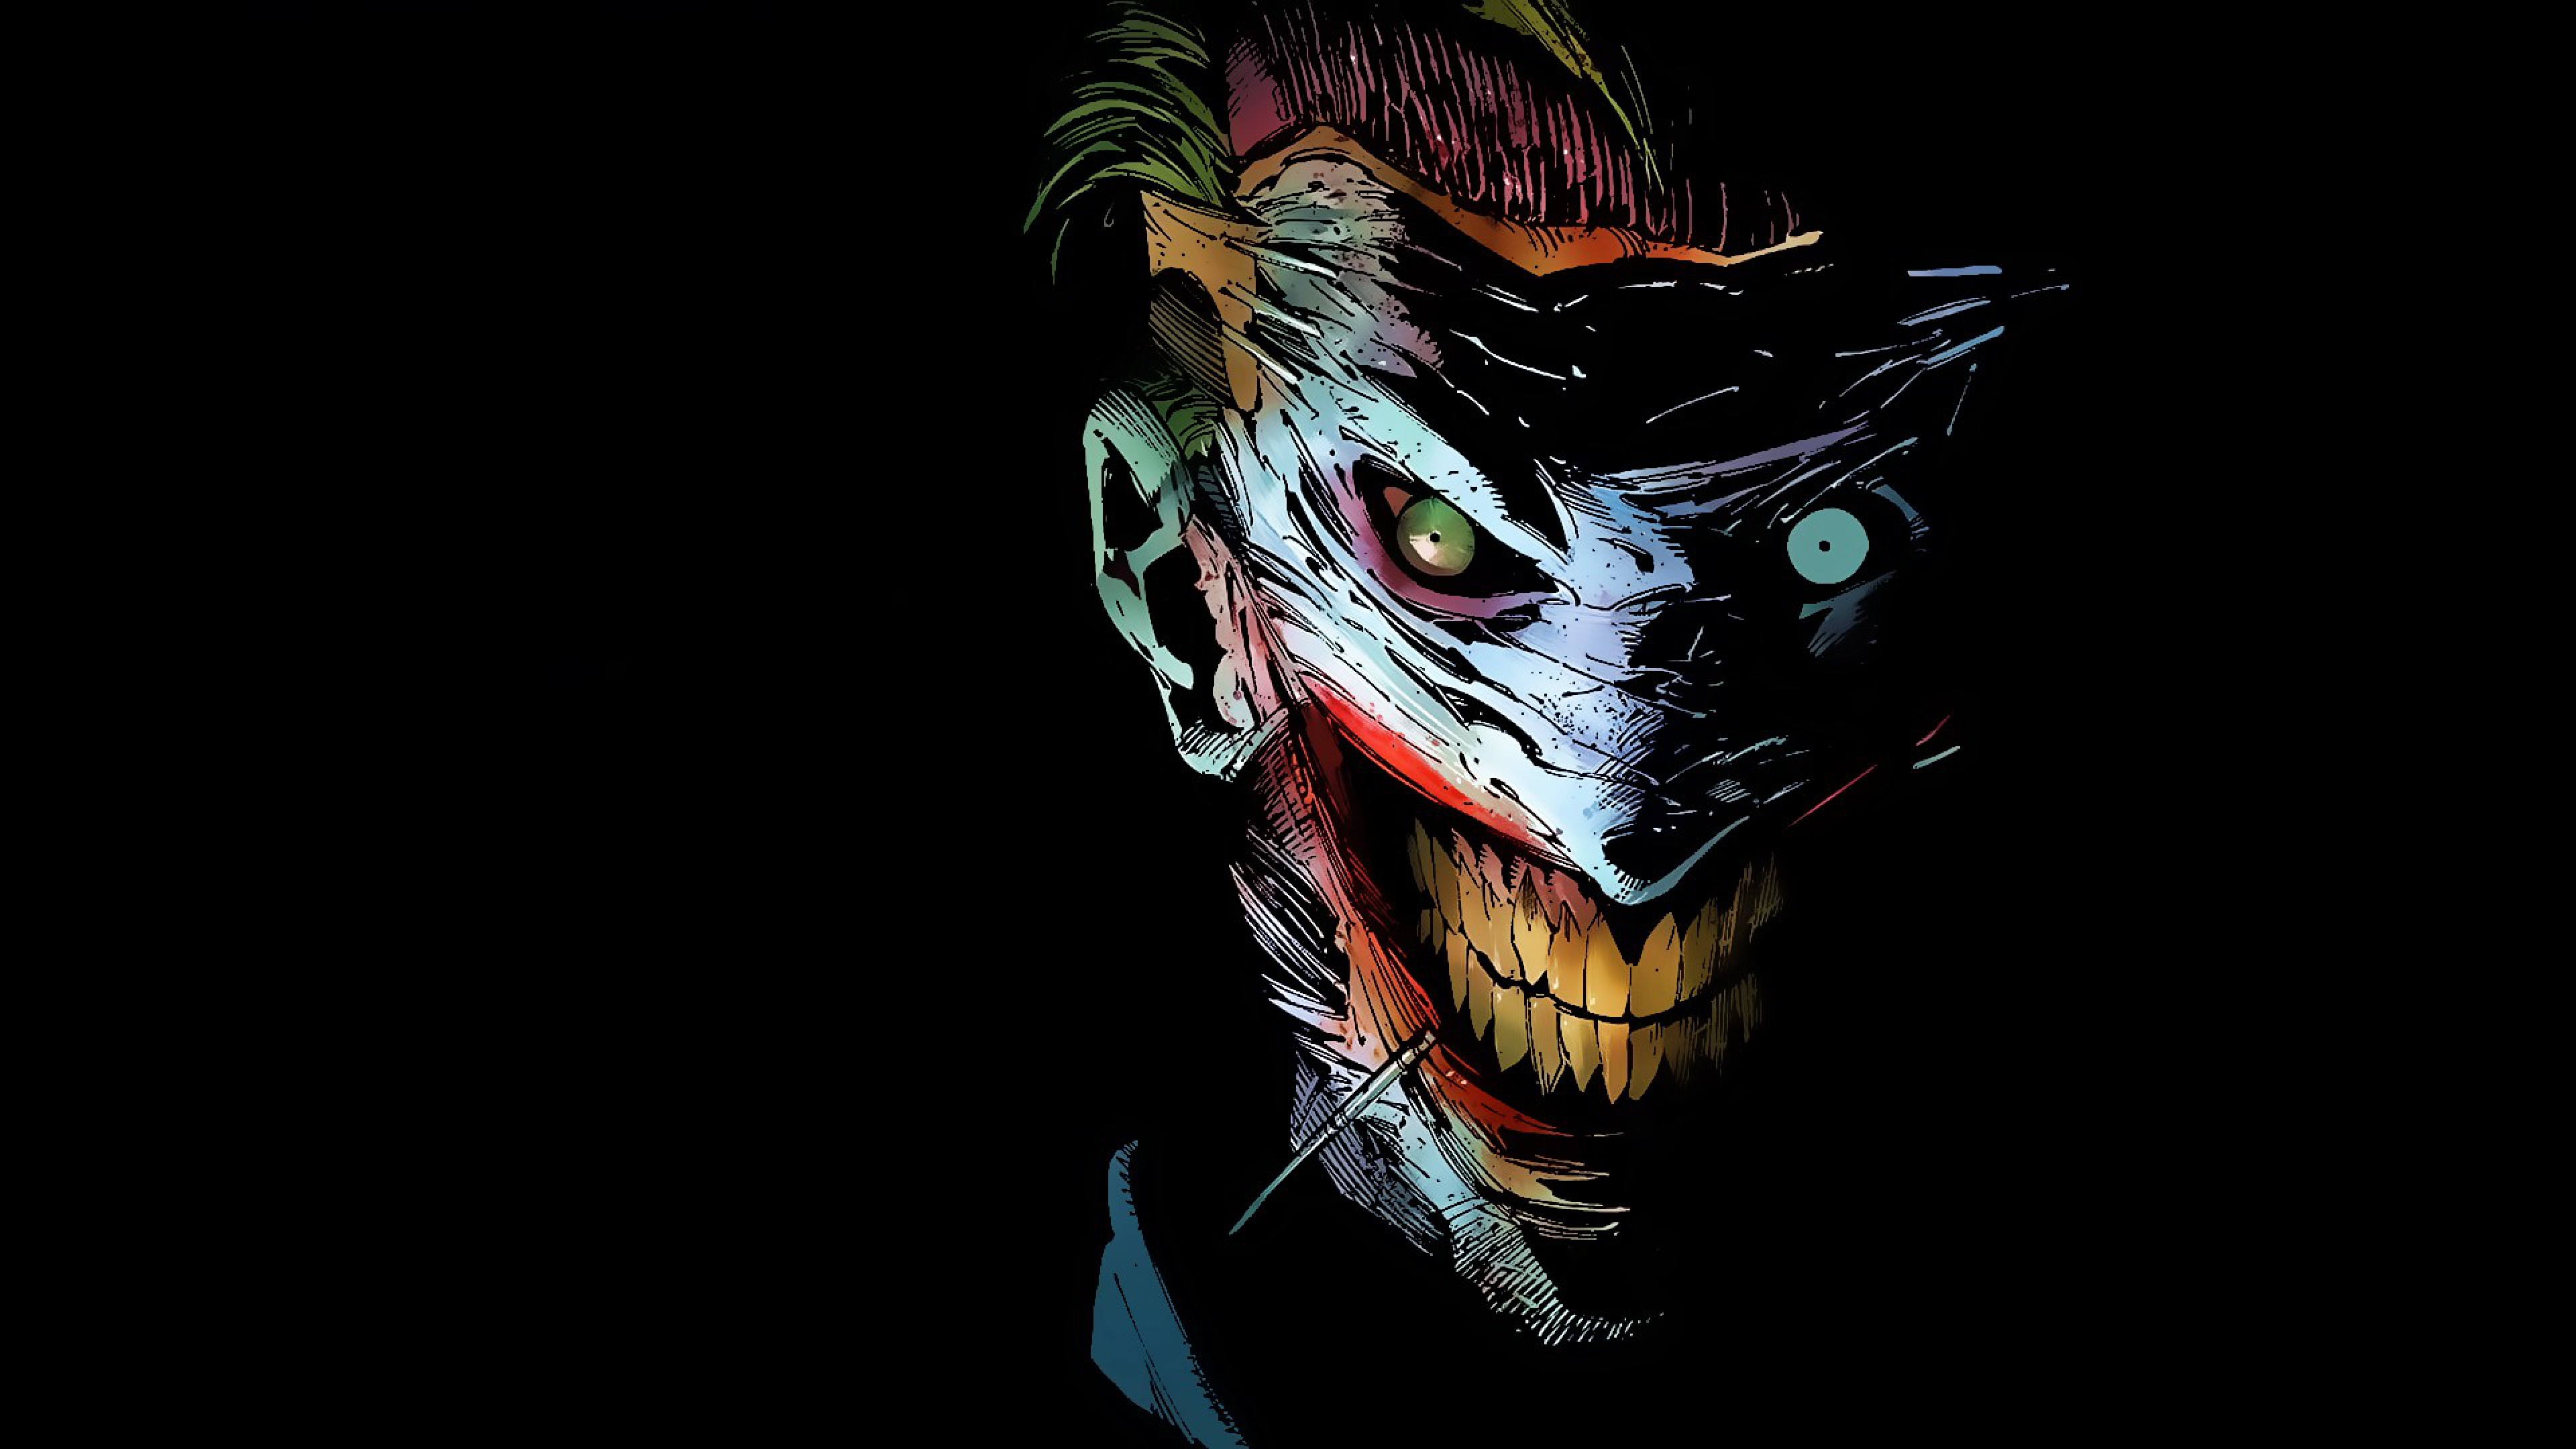 595 Joker Hd Wallpapers Background Images Wallpaper Abyss